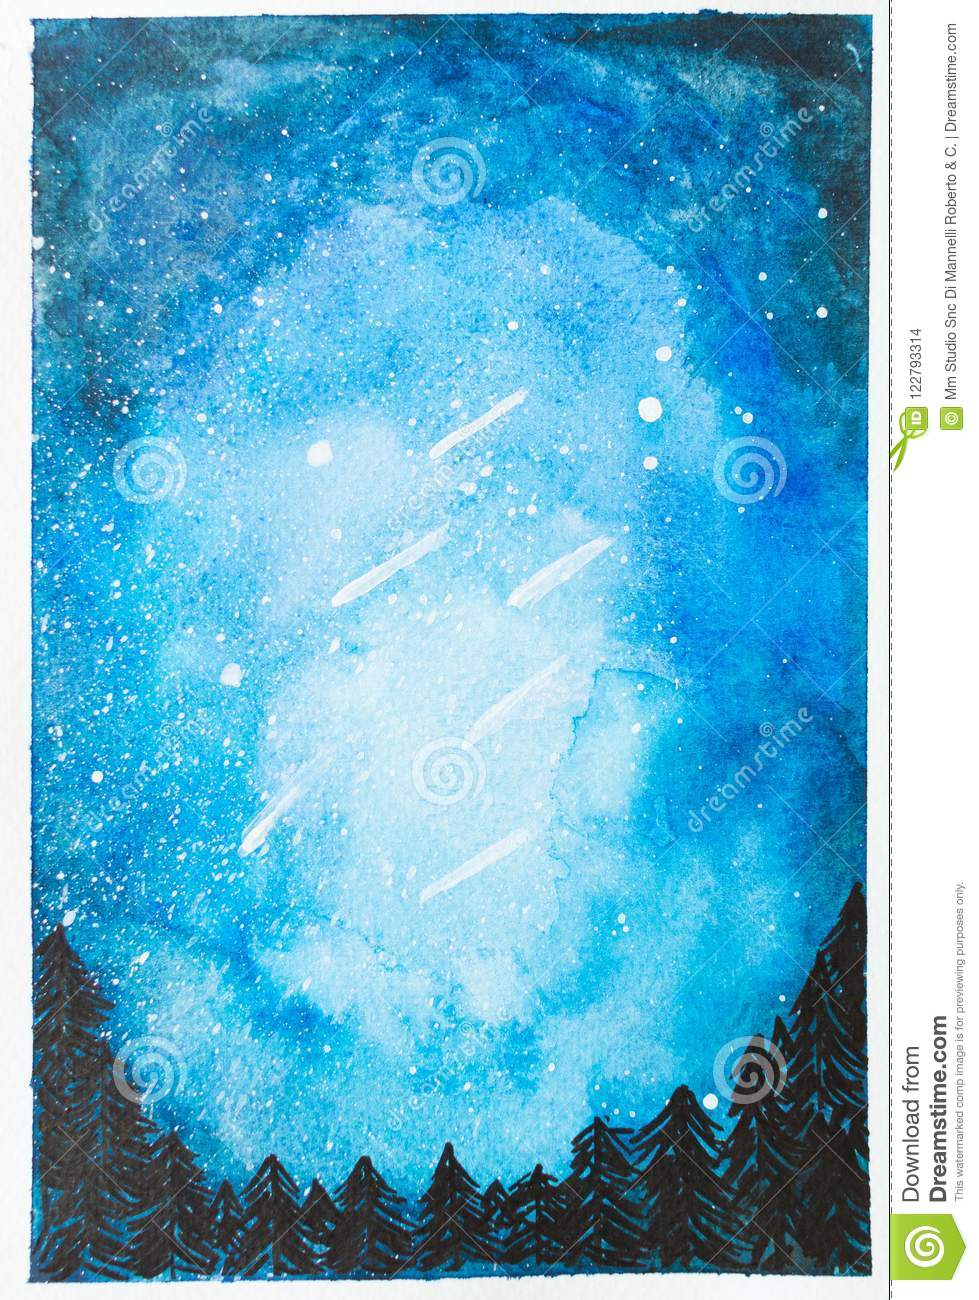 Watercolor hand painted blue night sky with falling stars and tr